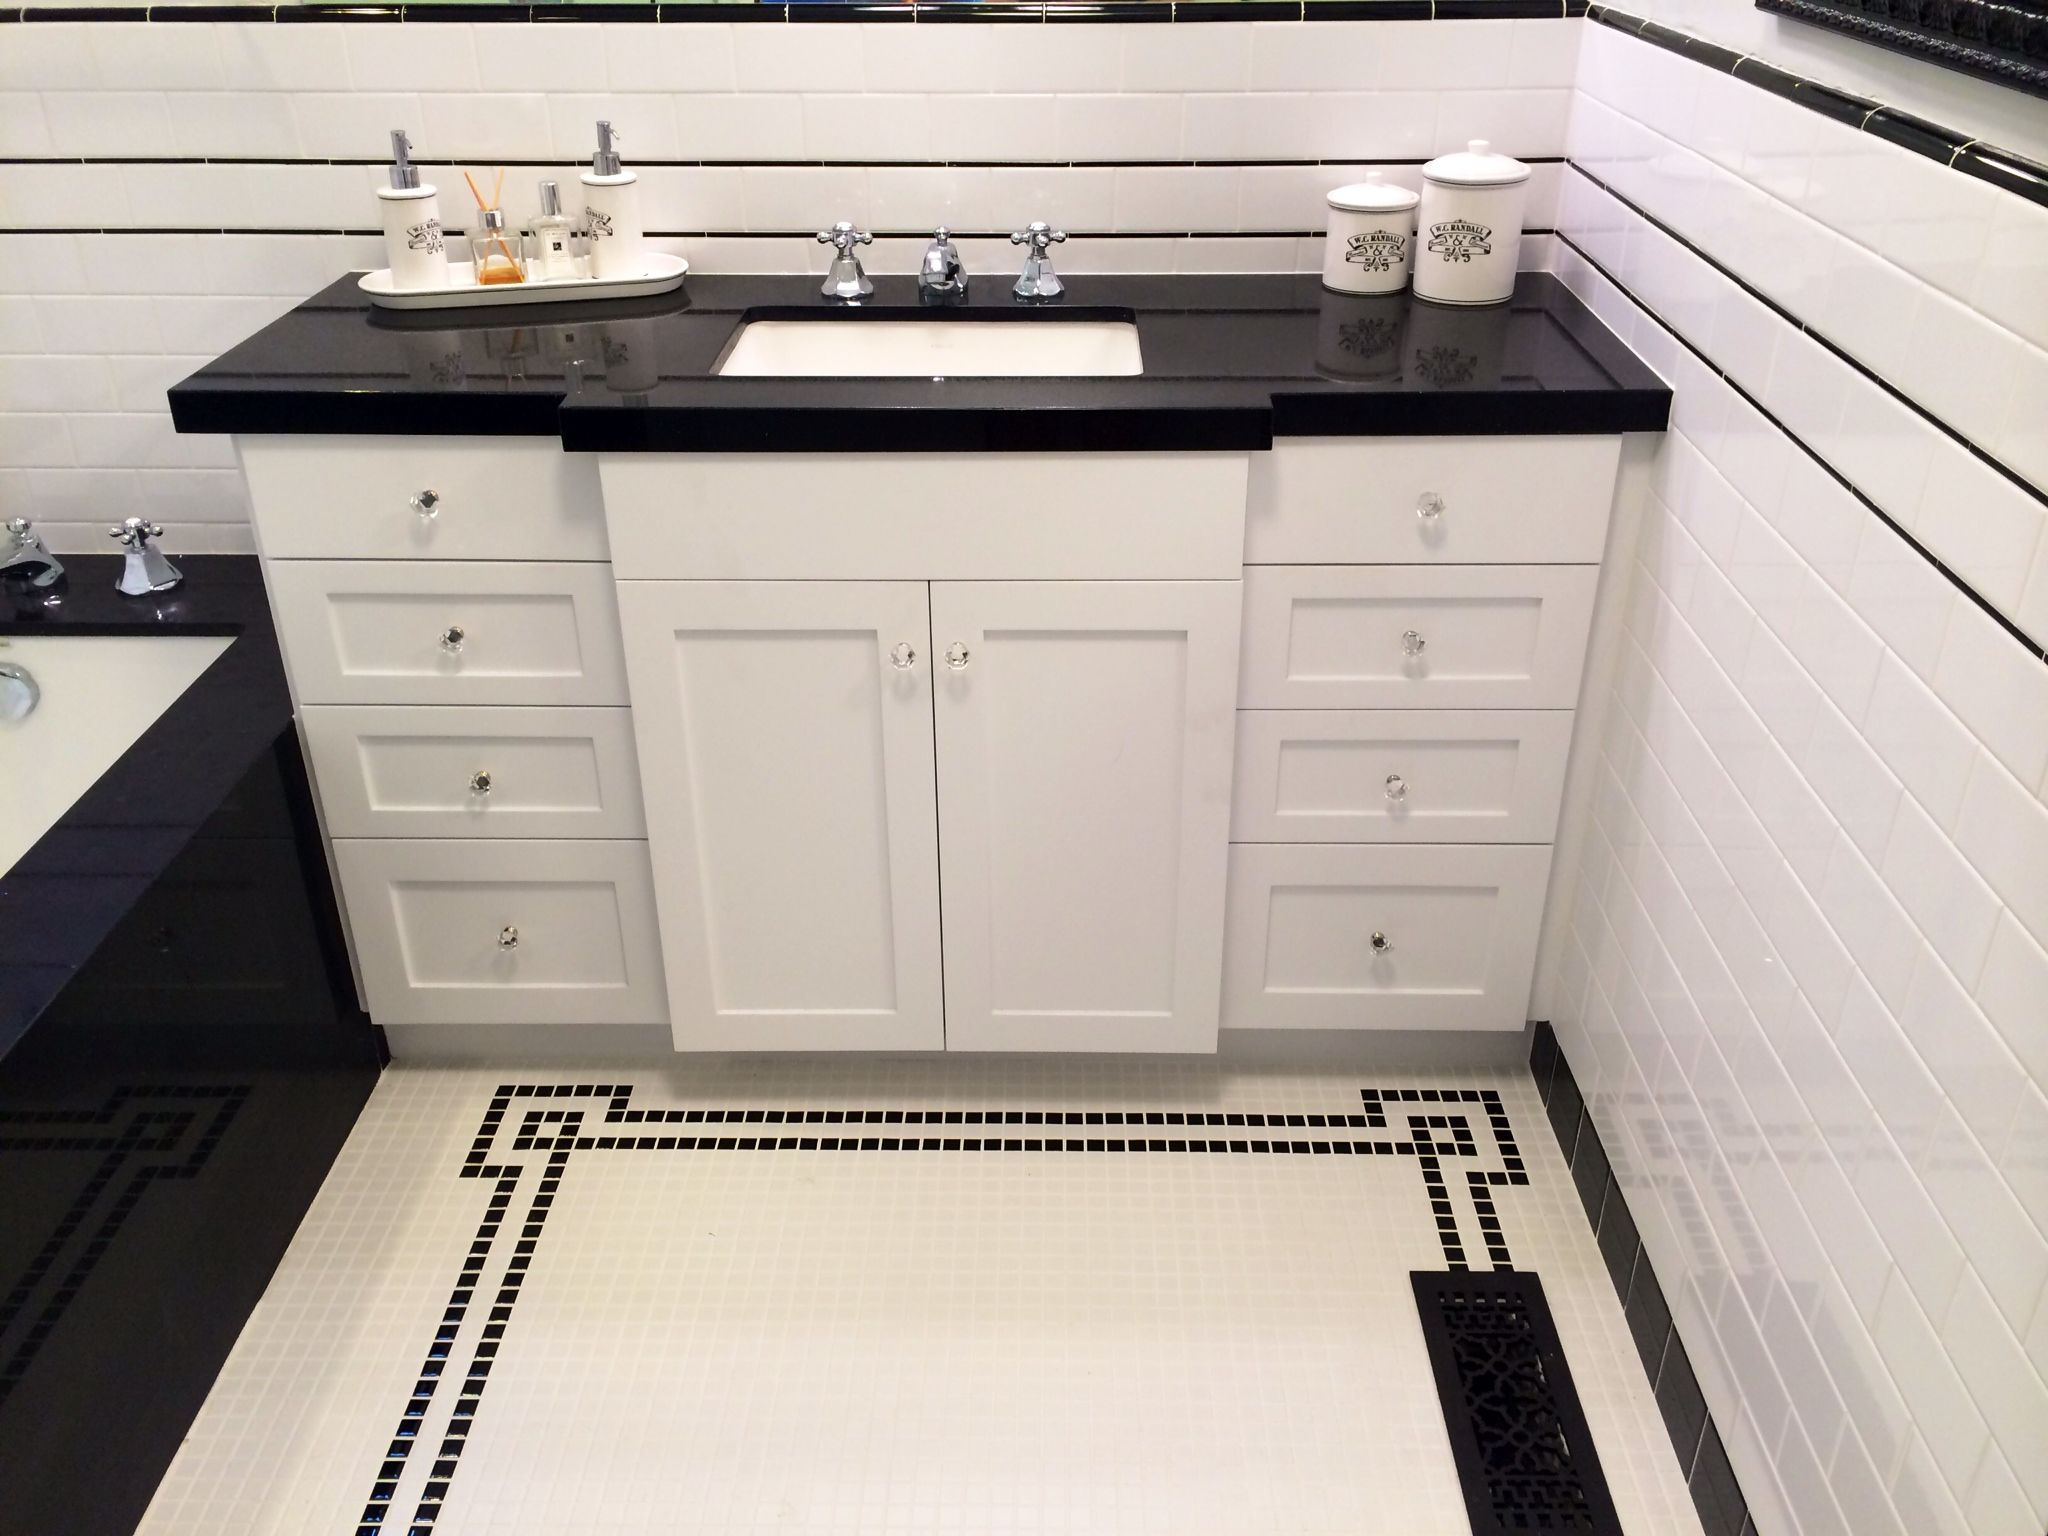 1930s Bathroom Remodel Before and After! | Bathrooms ...